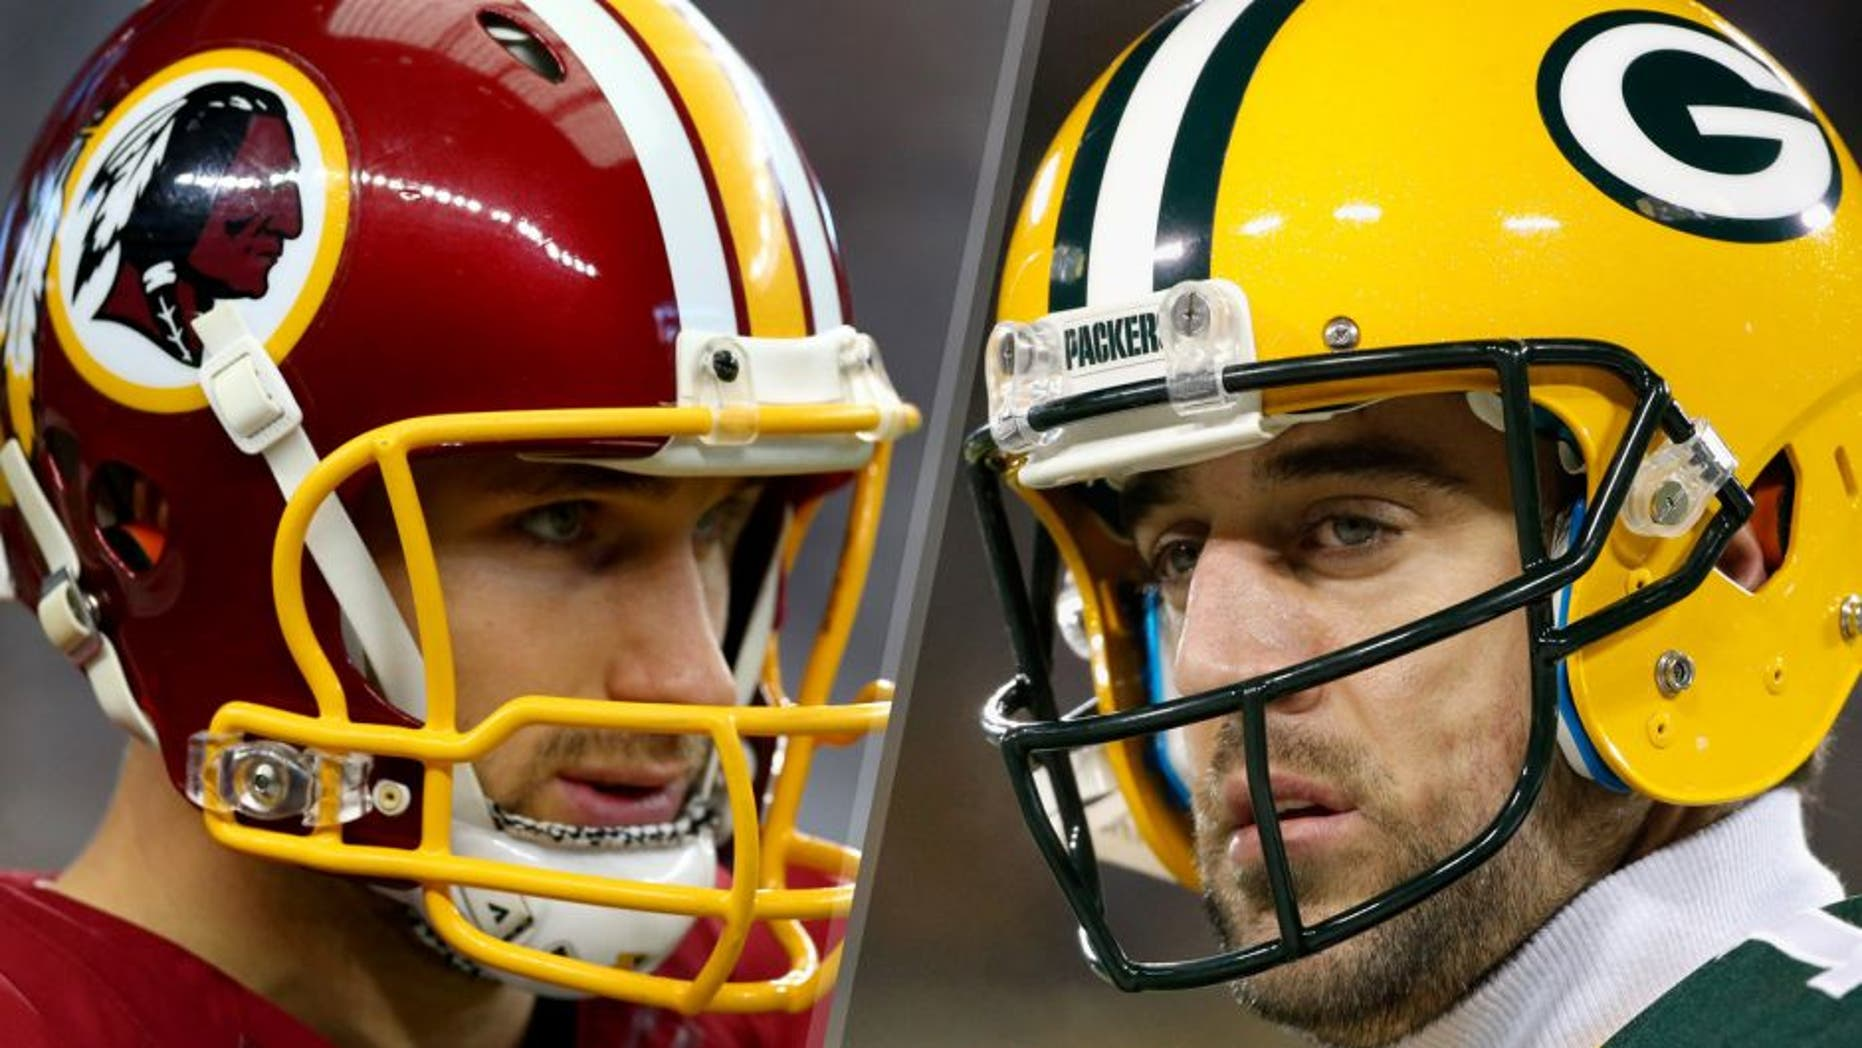 ARLINGTON, TX - JANUARY 03: Kirk Cousins #8 of the Washington Redskins looks on before the Redskins take on the Dallas Cowboys at AT&T Stadium on January 3, 2016 in Arlington, Texas. (Photo by Ronald Martinez/Getty Images) GREEN BAY, WI - JANUARY 03: Aaron Rodgers #12 of the Green Bay Packers looks on prior to the game against the Minnesota Vikings at Lambeau Field on January 3, 2016 in Green Bay, Wisconsin. (Photo by Jon Durr/Getty Images)